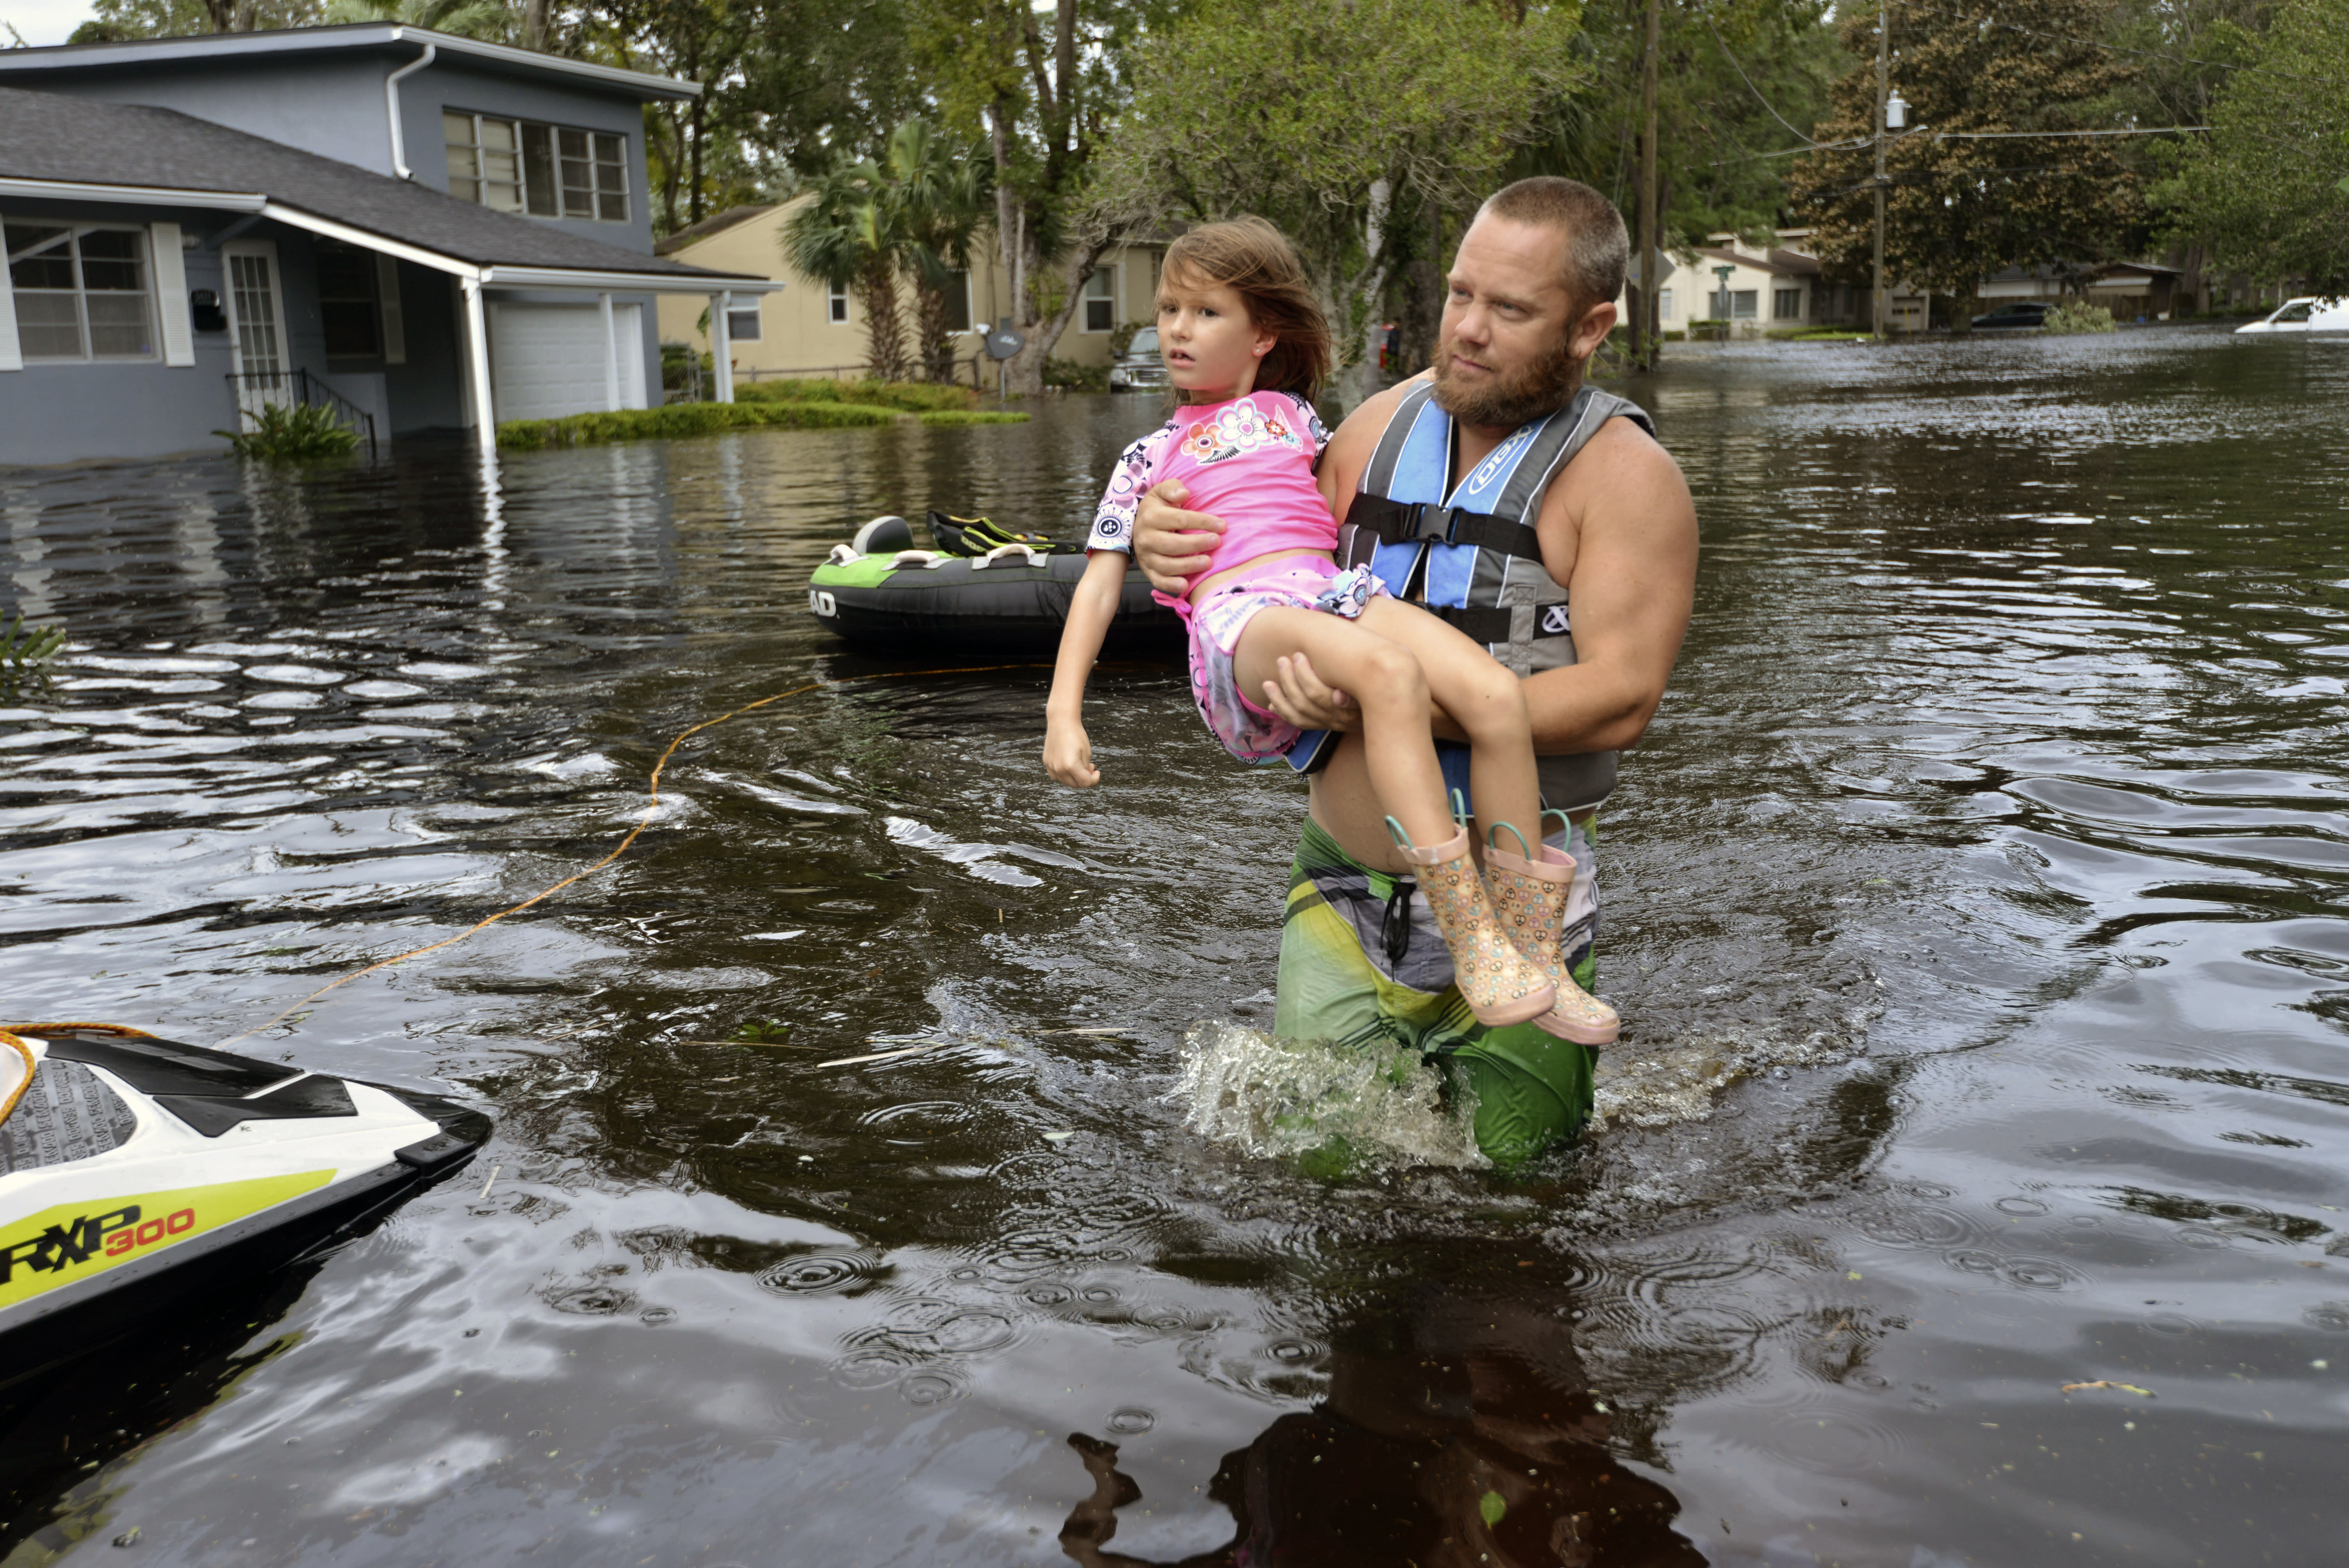 <p><strong>Jacksonville</strong><br>Tommy Nevitt carries Miranda Abbott, 6, through floodwater caused by Hurricane Irma on the west side of Jacksonville, Fla., Sept. 11 2017. (Photo: Dede Smith/The Florida Times-Union via AP) </p>